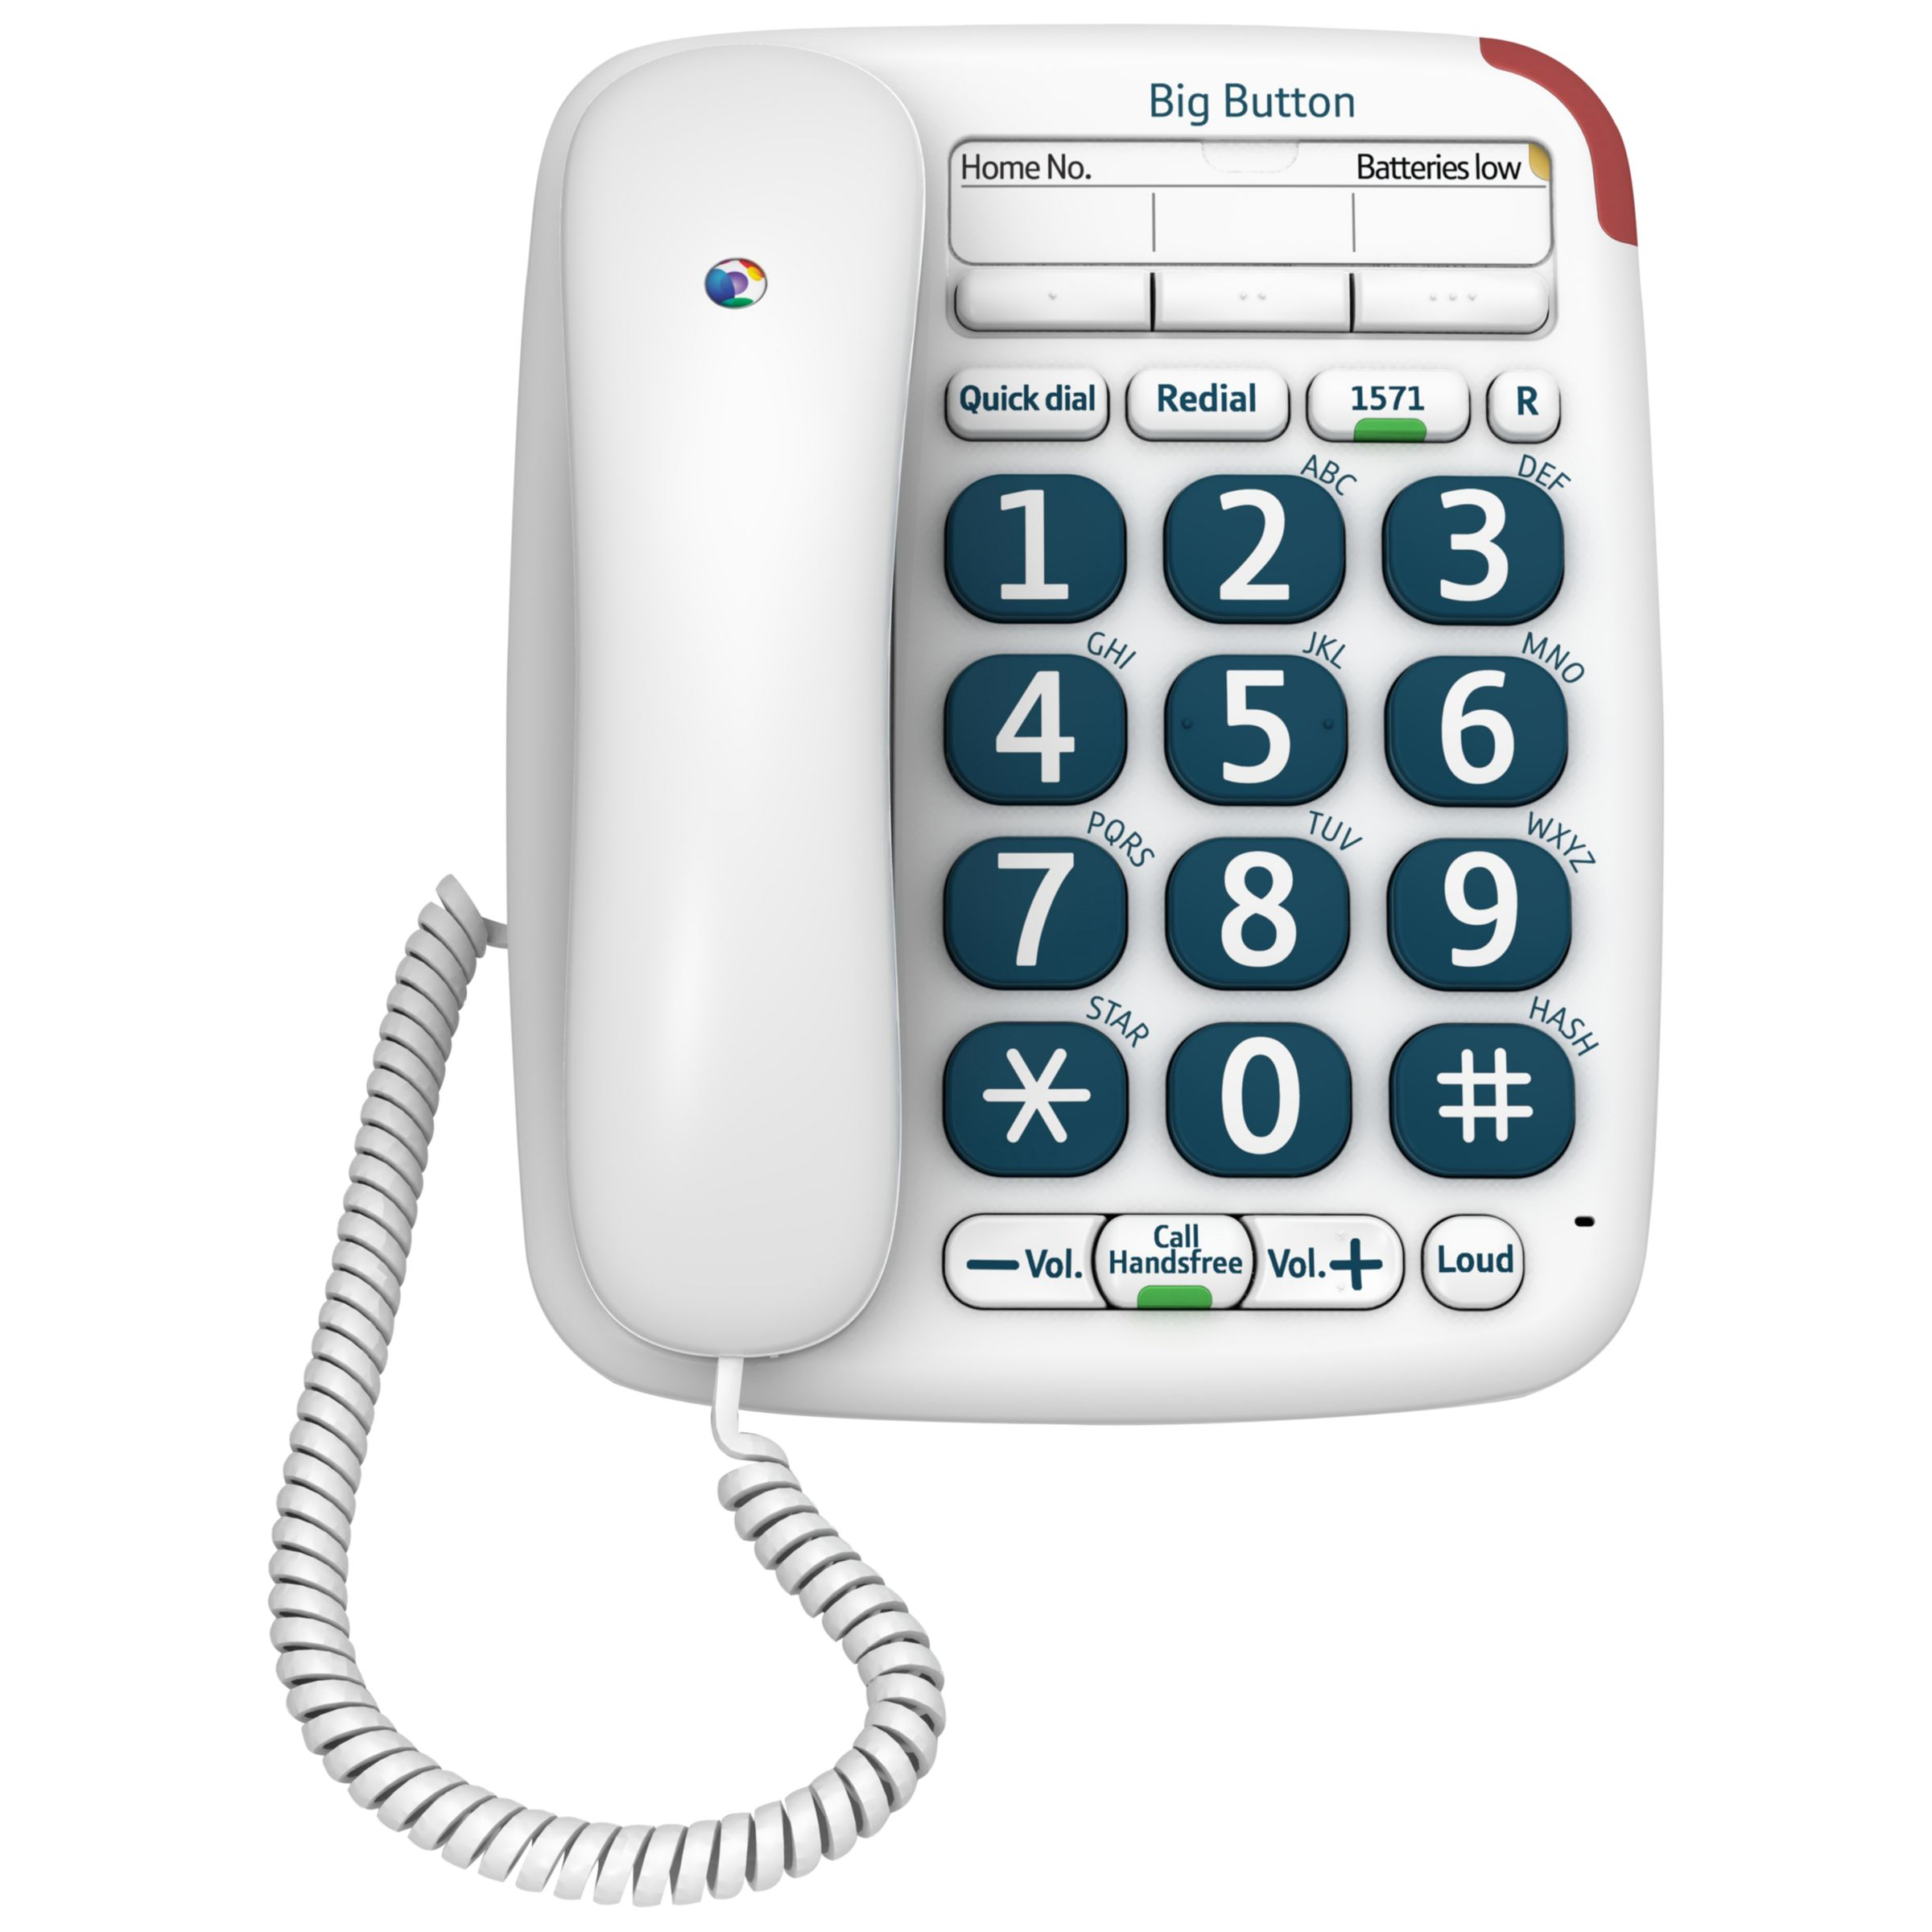 BT BT Big Button 200 Corded Telephone, White